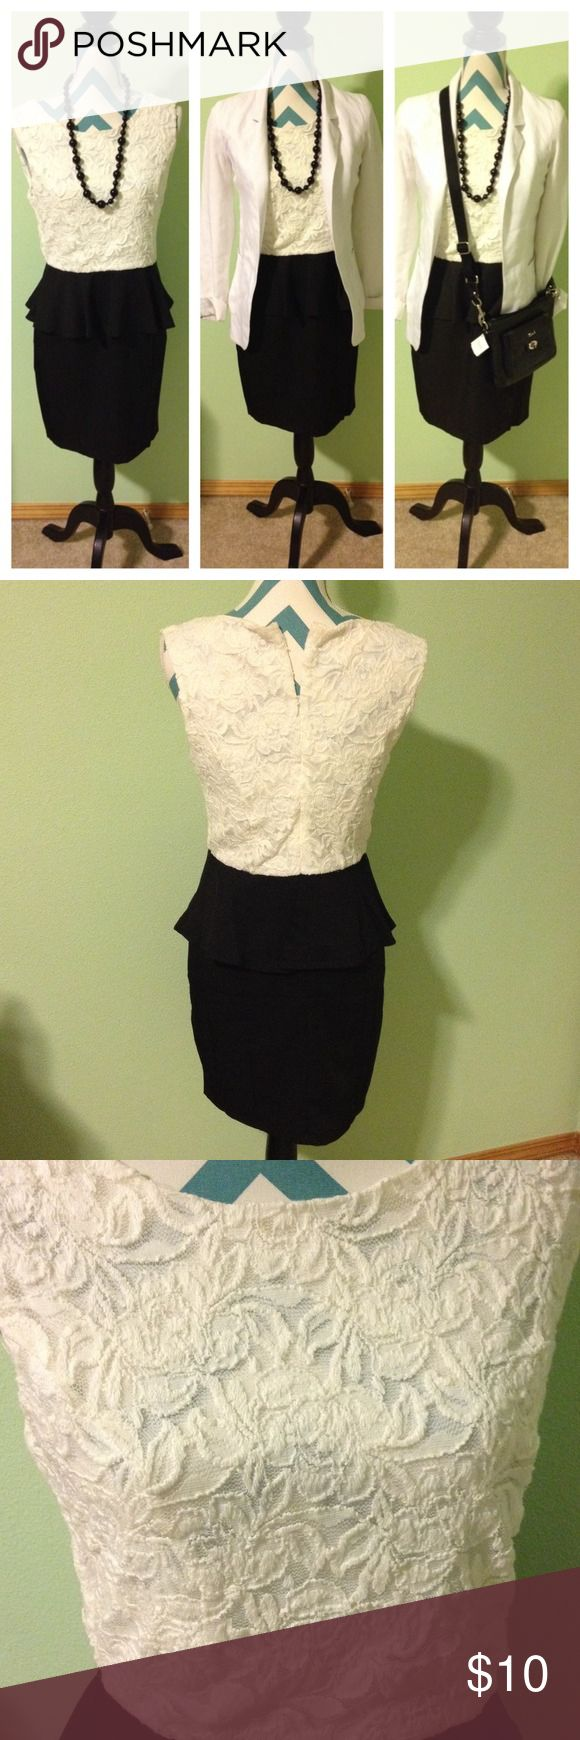 🍁BOGO 🍂 Cream and black peplum dress NWT Lacy cream top and black peplum skirt. One piece with a zipper in the back. Lace top has a lining but is still slightly see through. Brand new with tags! Blazer is for sale too! Bundle and save  Forever 21 Dresses